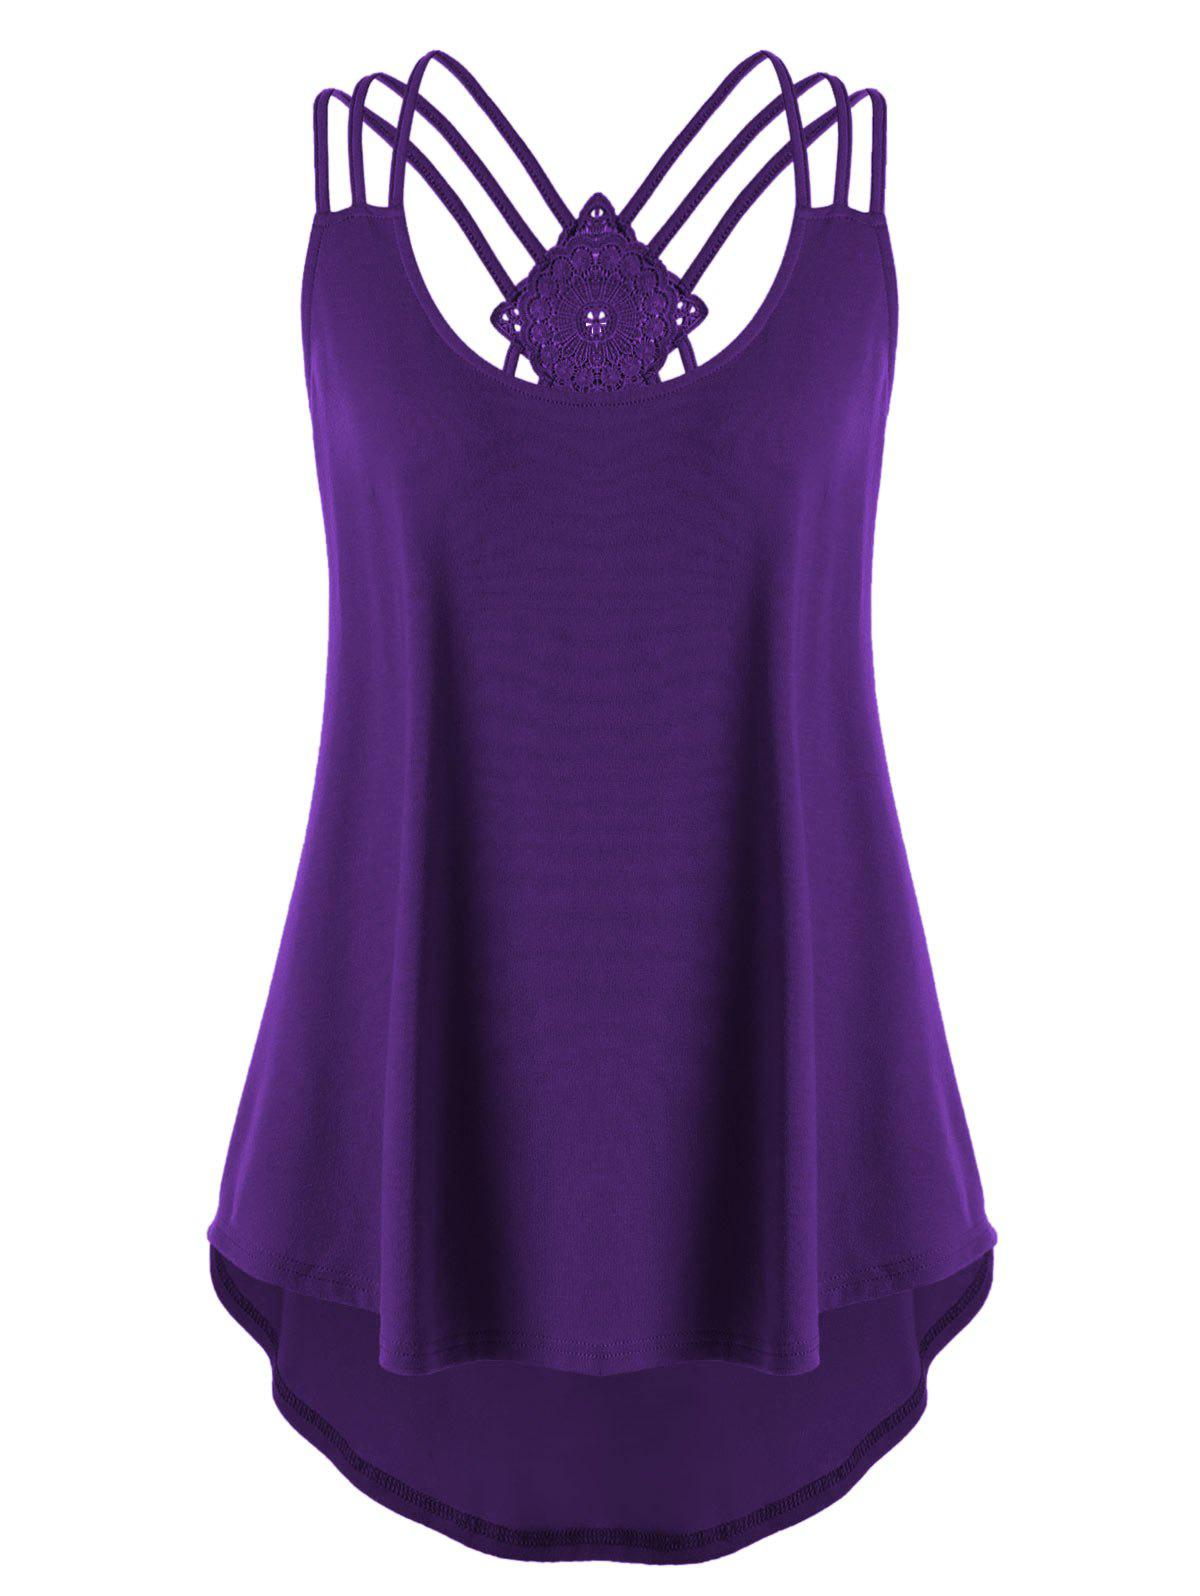 Plus Size Criss Cross Curved Tank Top - PURPLE XL